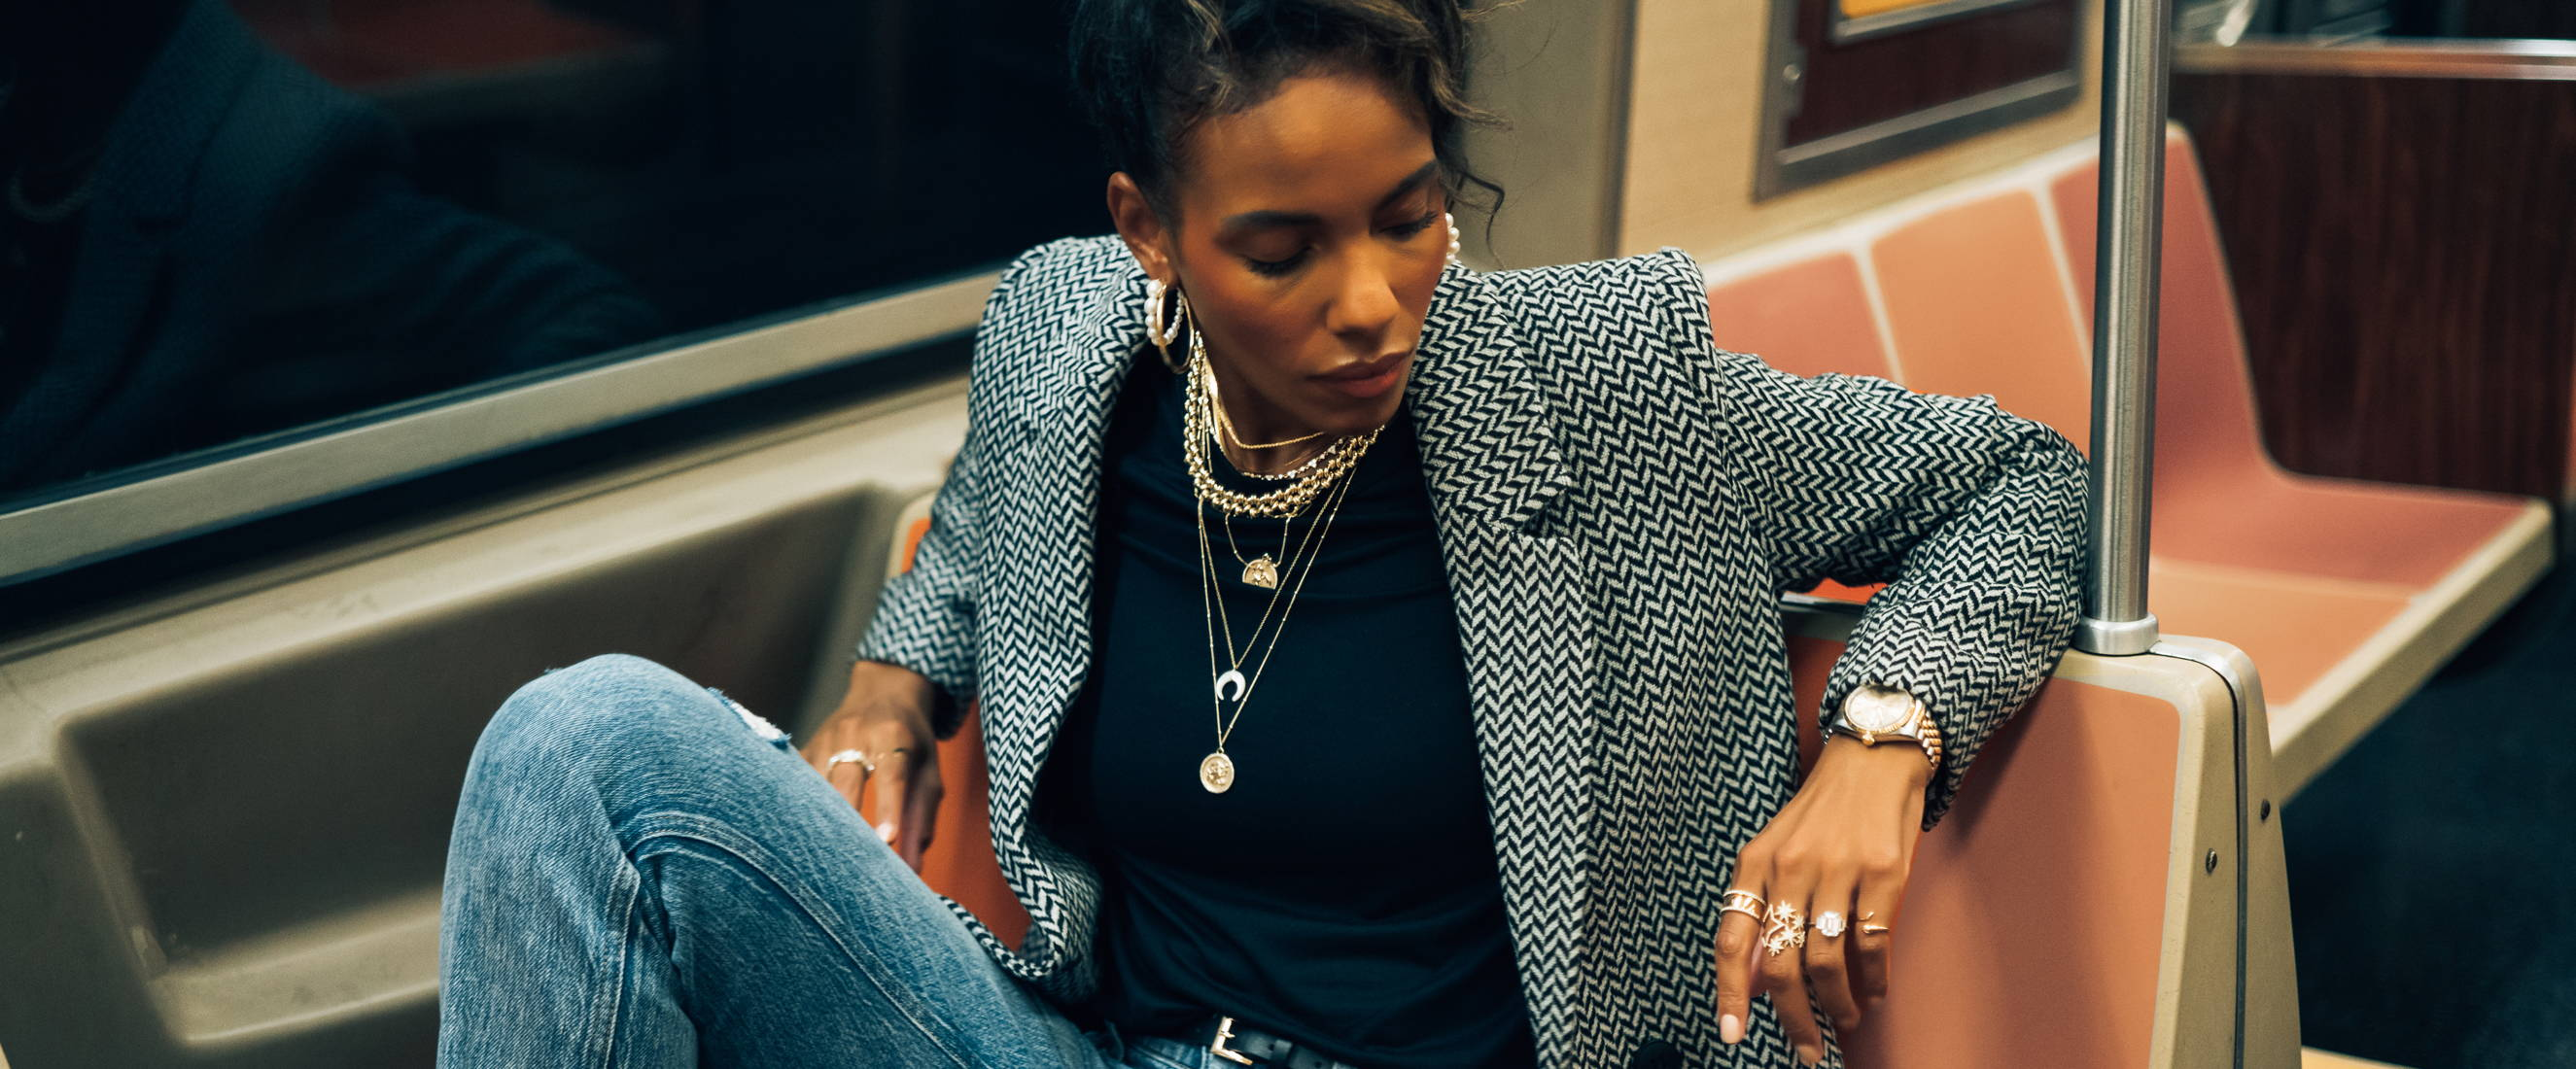 Model wearing Ring Concierge jewelry on a NYC subway